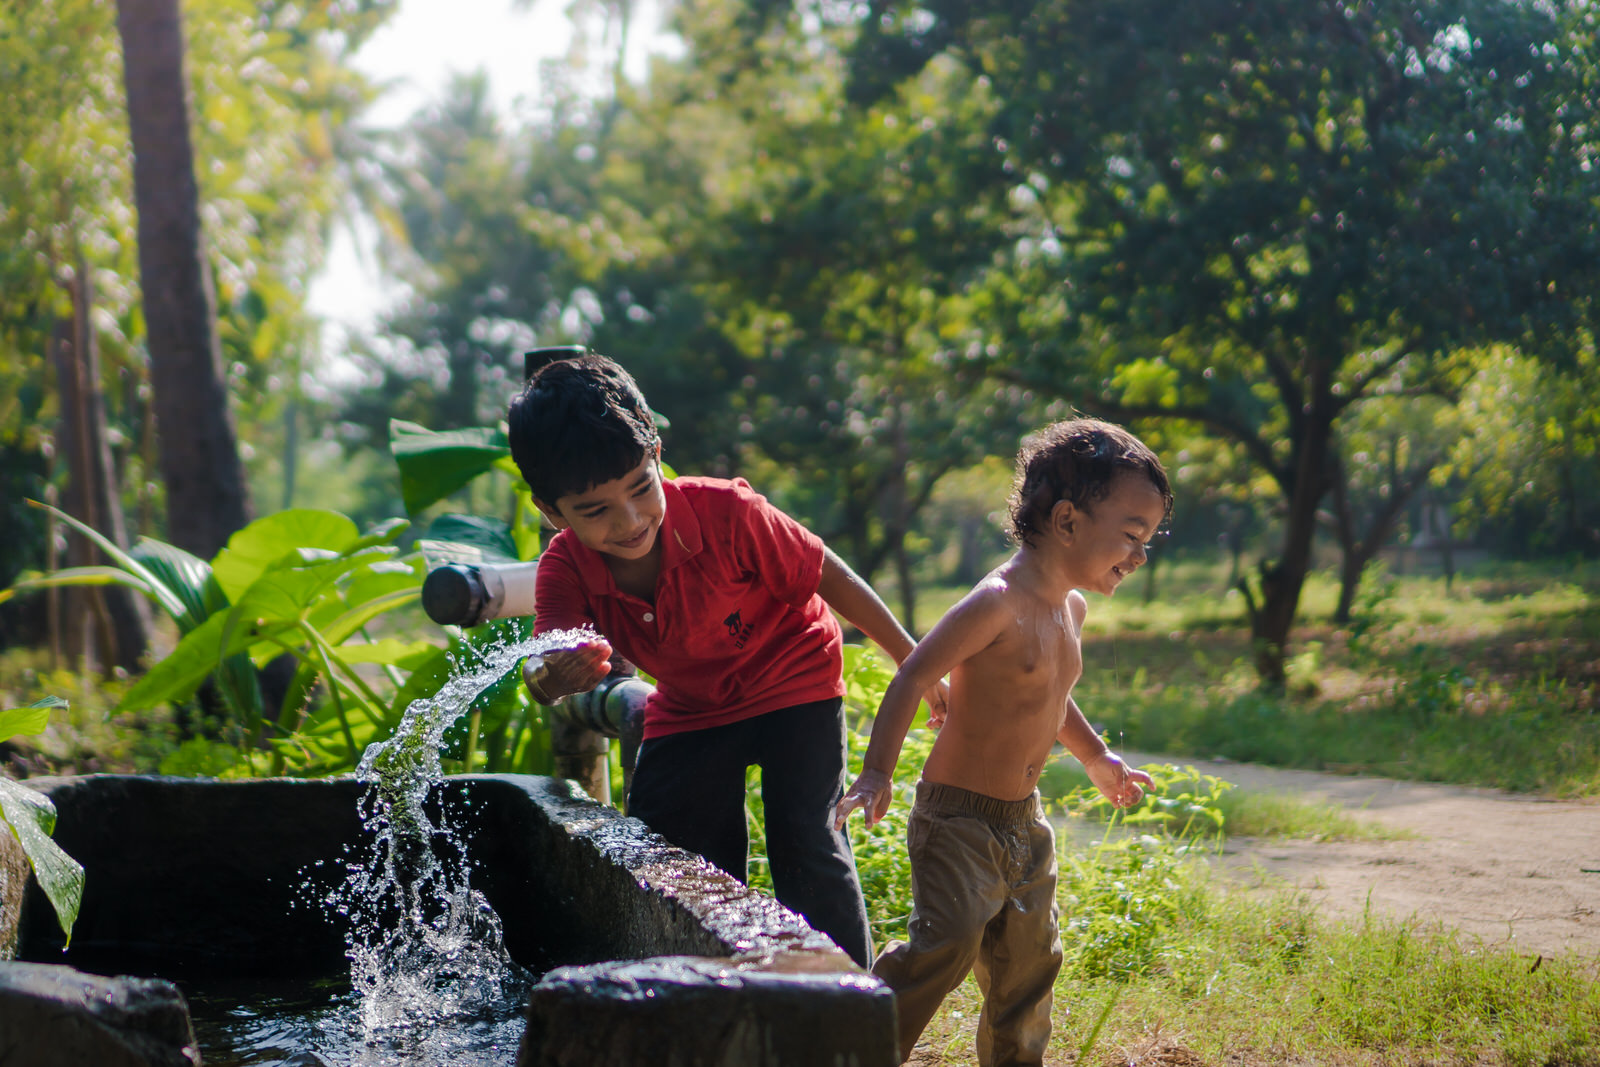 23122017-Boys-Playing-Water-Tank-348.jpg